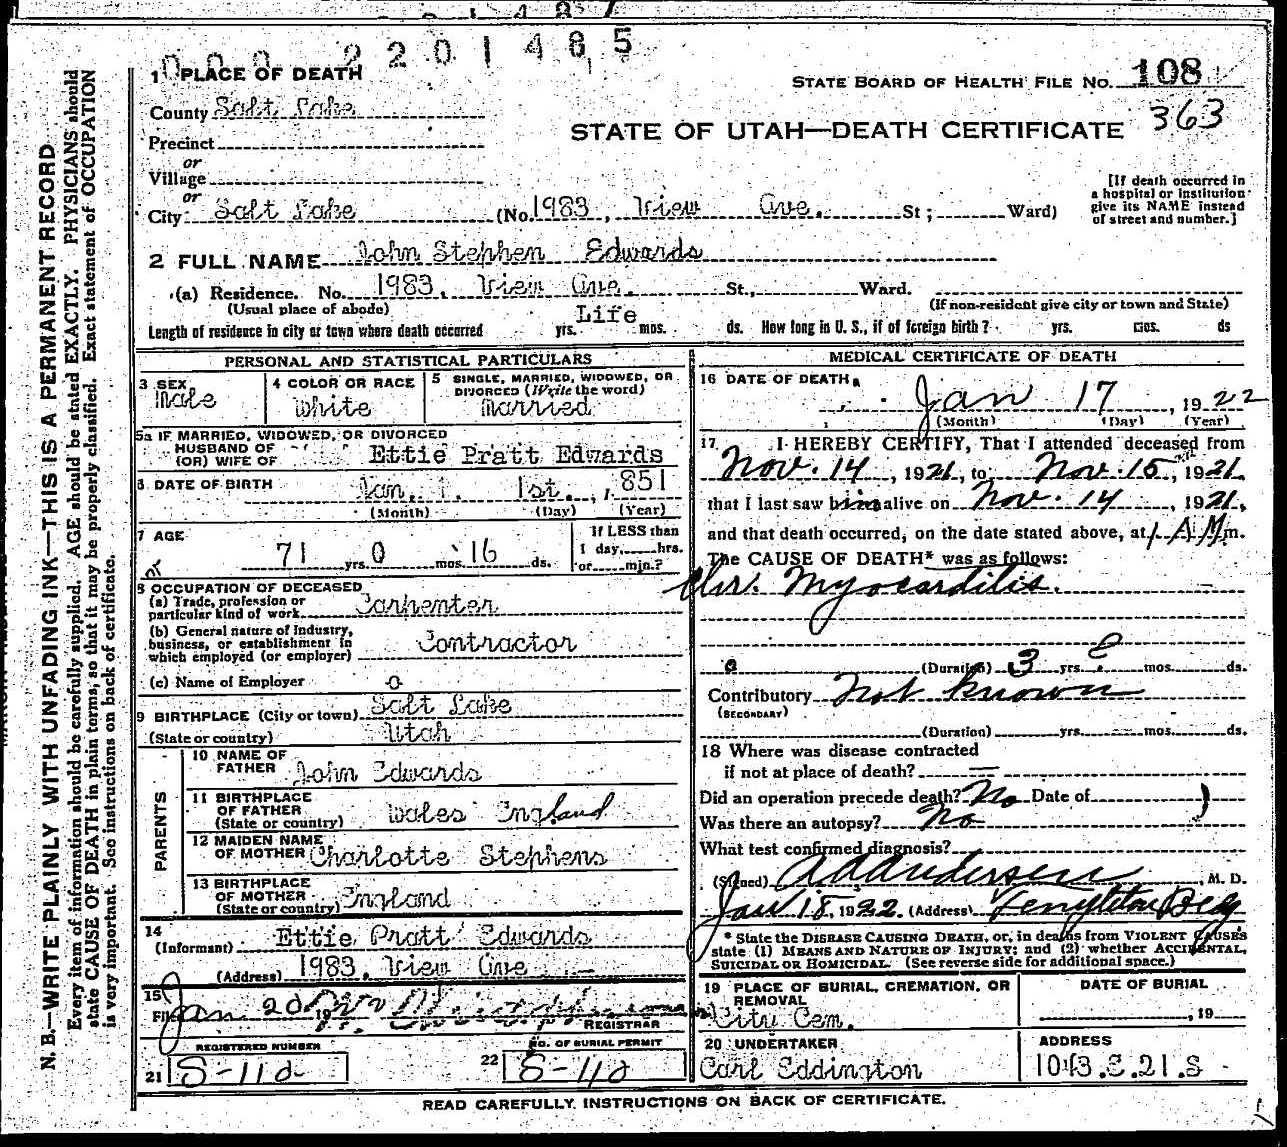 death certificate of john stephen edwards